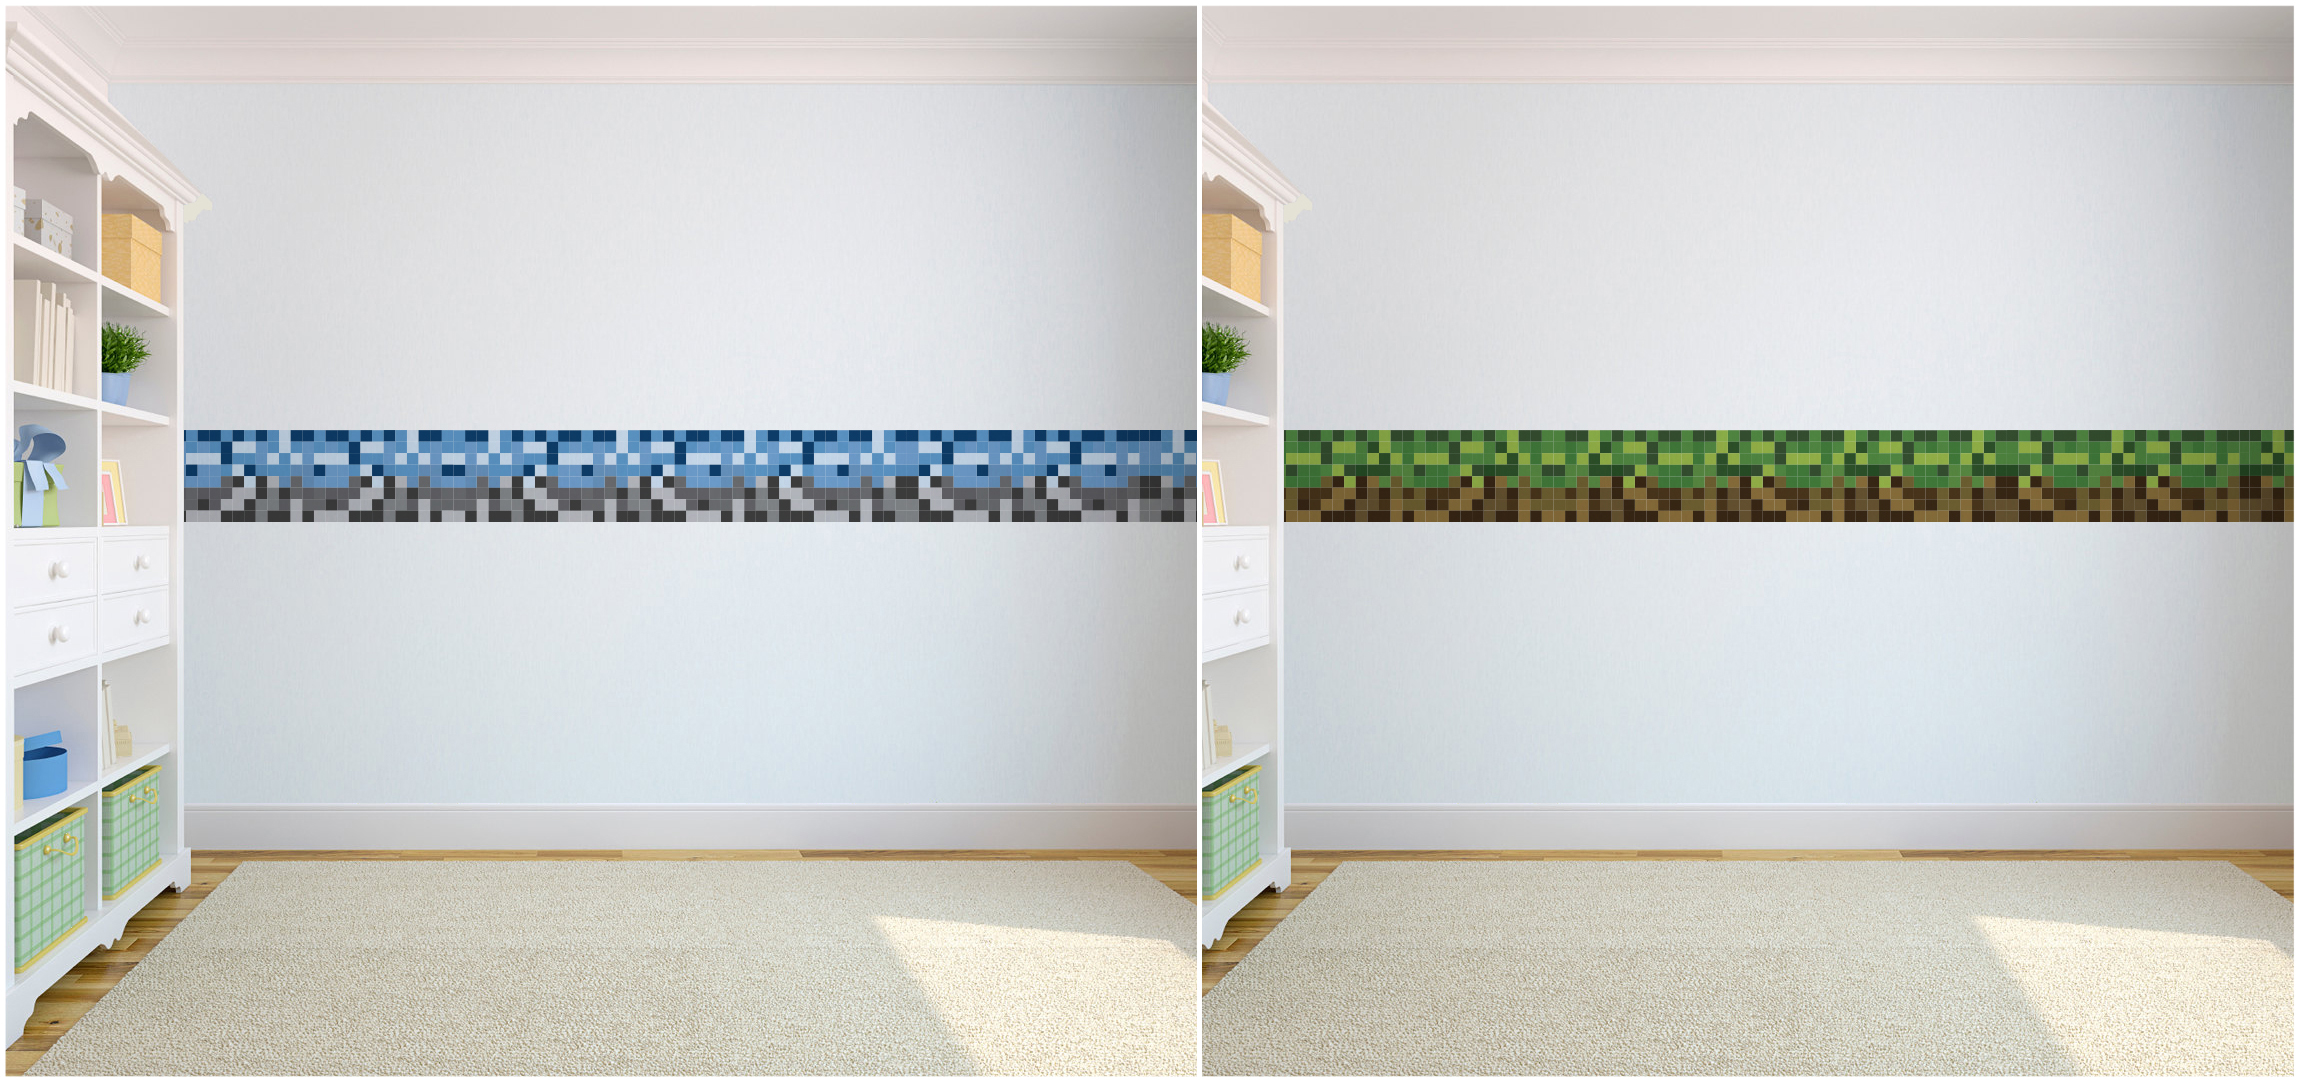 pixels design children 39 s bedroom wallpaper border self adhesive kids mining game ebay. Black Bedroom Furniture Sets. Home Design Ideas